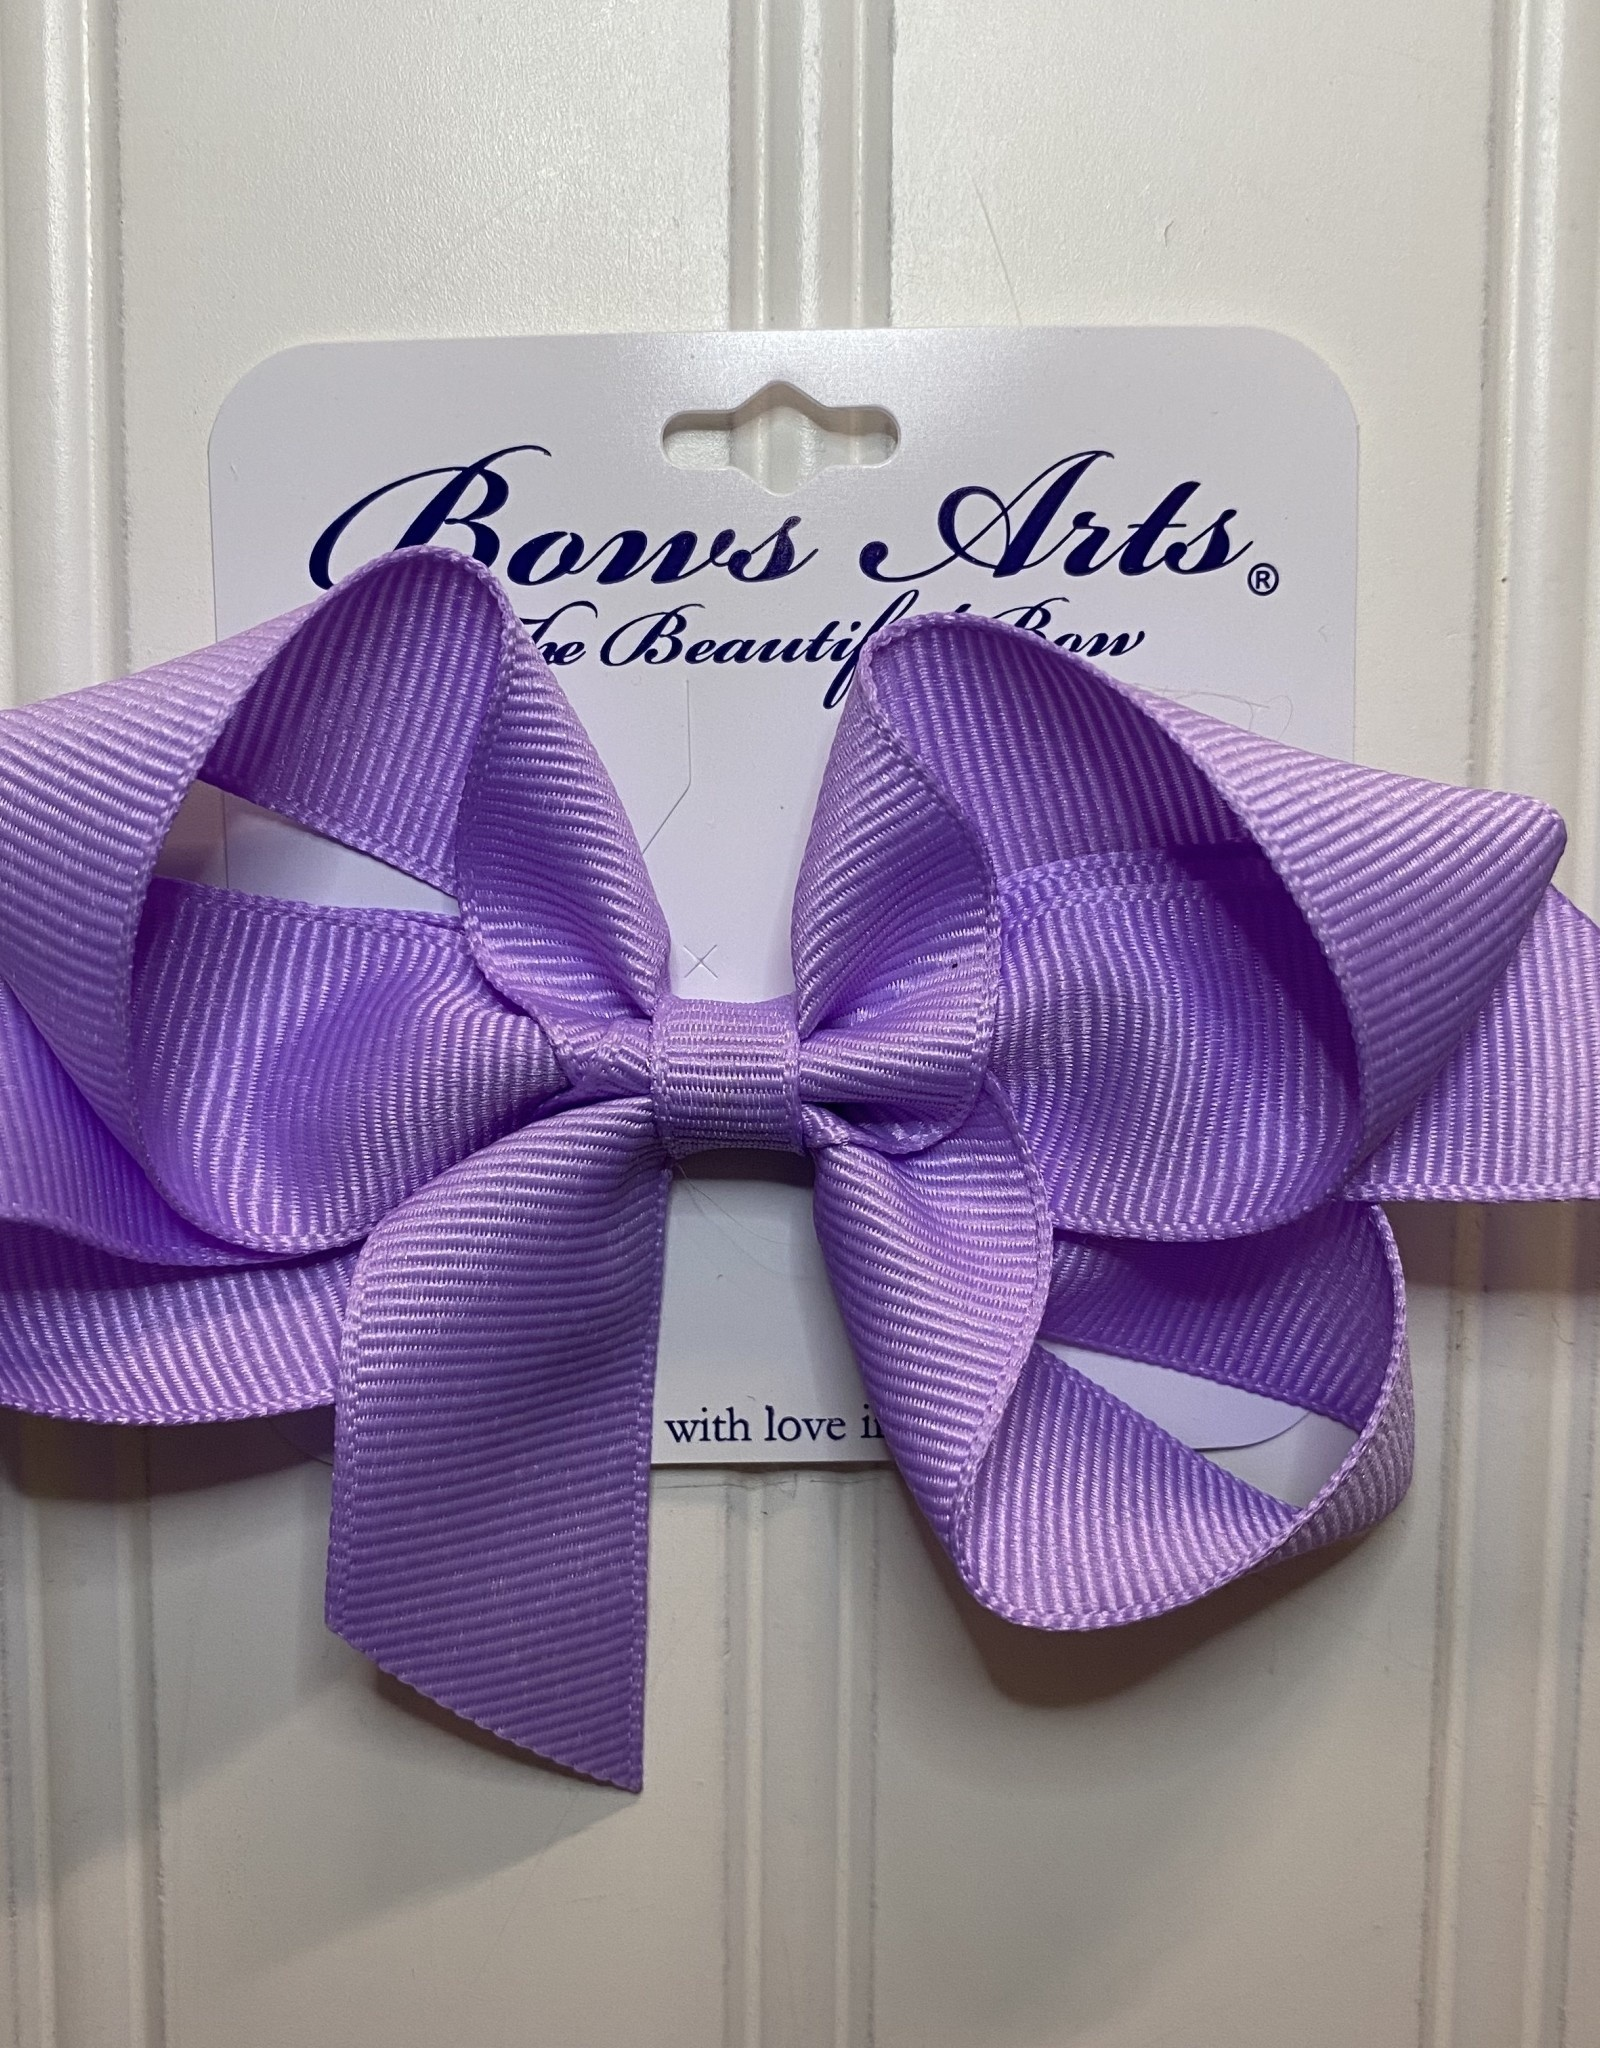 "Bows Arts Small Classic Bow 4"" - Light Orchid"